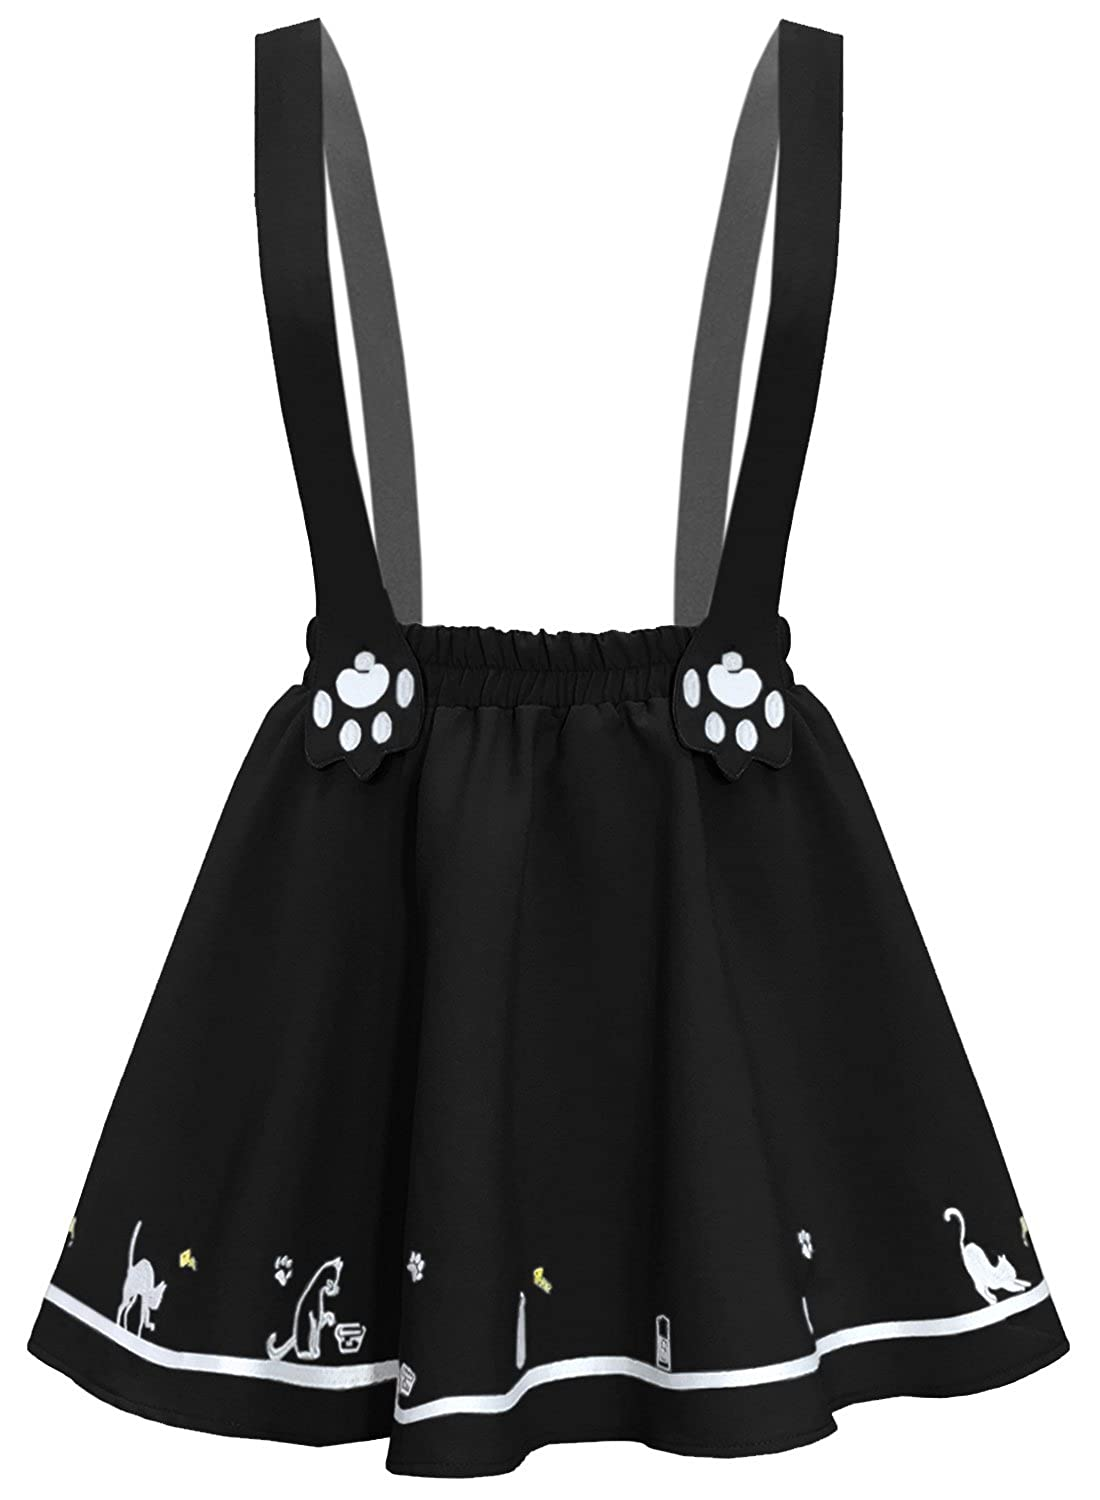 Futurino Women S Sweet Cat Paw Embroidery Pleated Mini Skirt With 2 Suspender